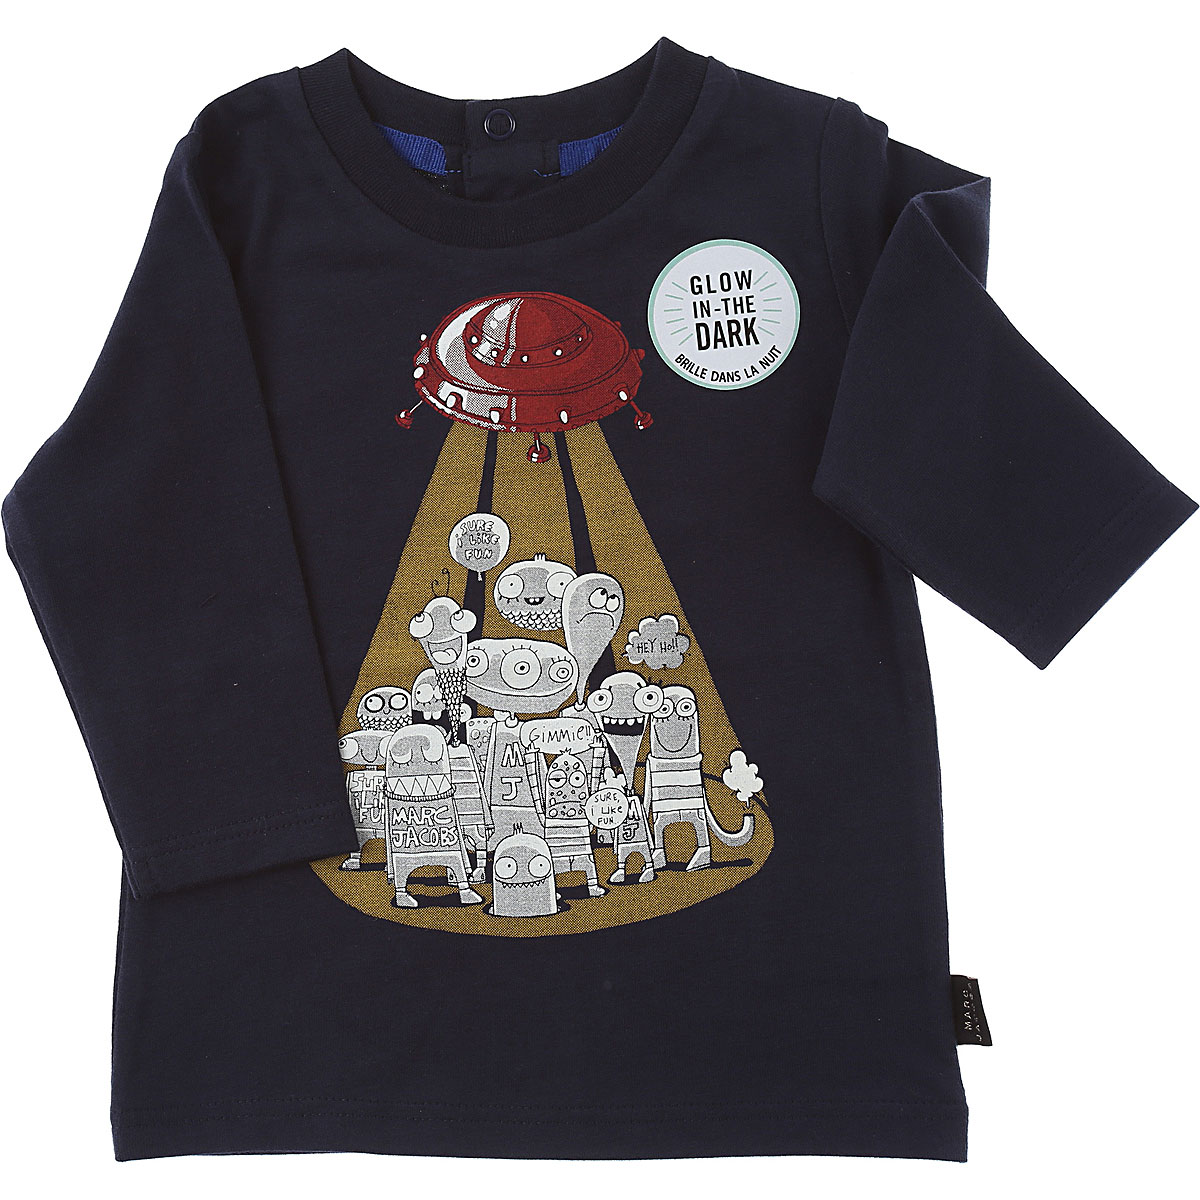 Marc Jacobs Baby T-Shirt for Boys On Sale, Navy Blue, Cotton, 2019, 12 M 18M 2Y 3Y 6M 9M